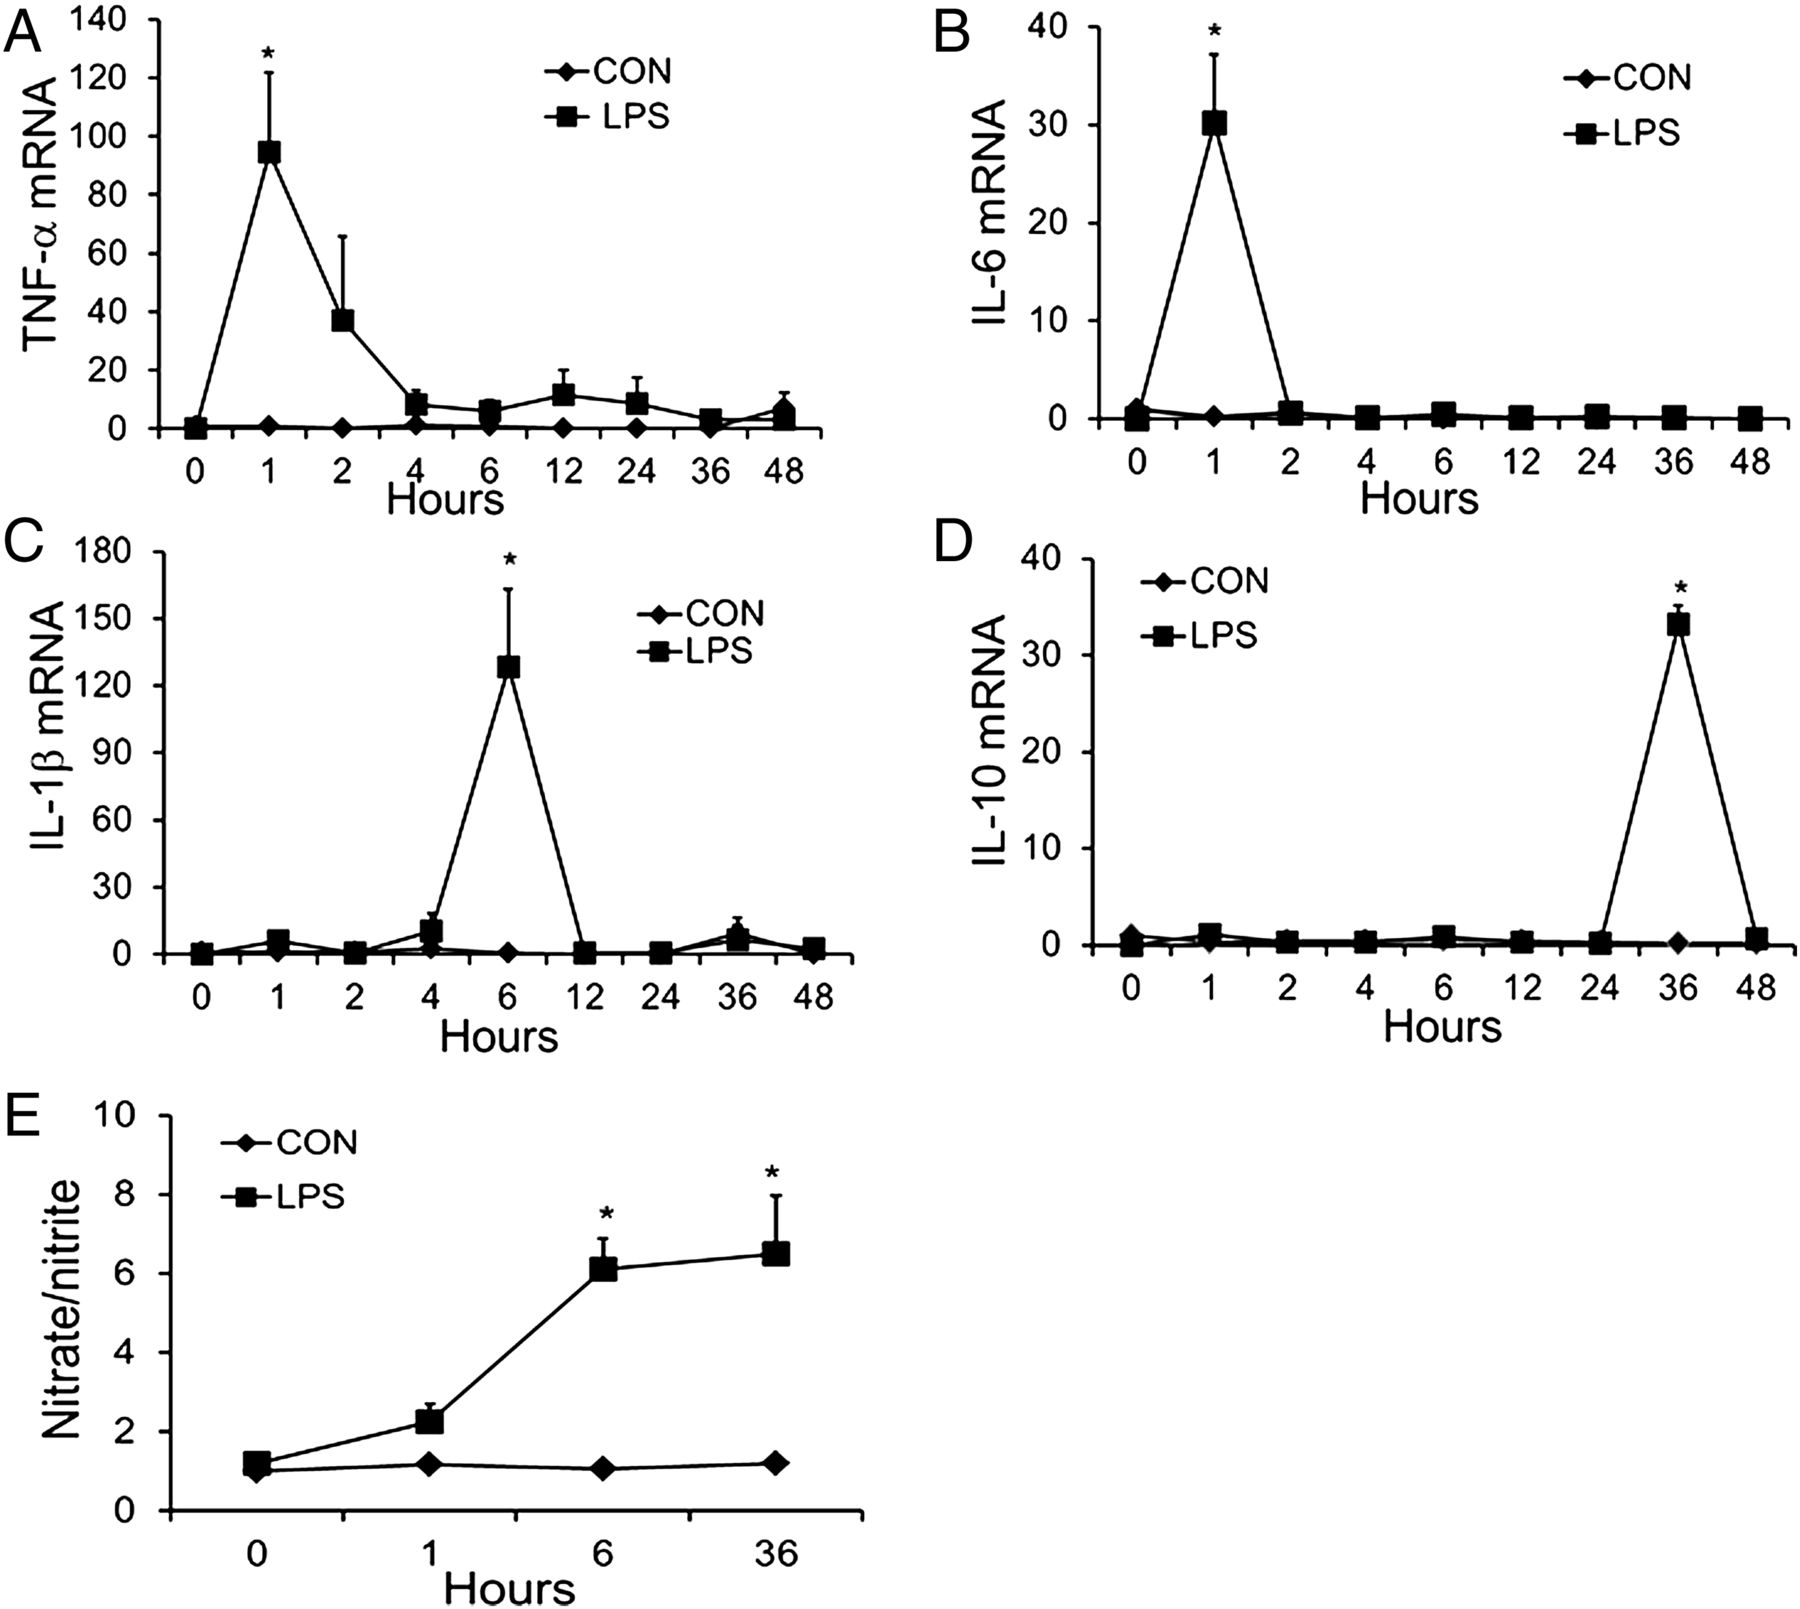 MicroRNA-26b Modulates the NF-κB Pathway in Alveolar Macrophages by